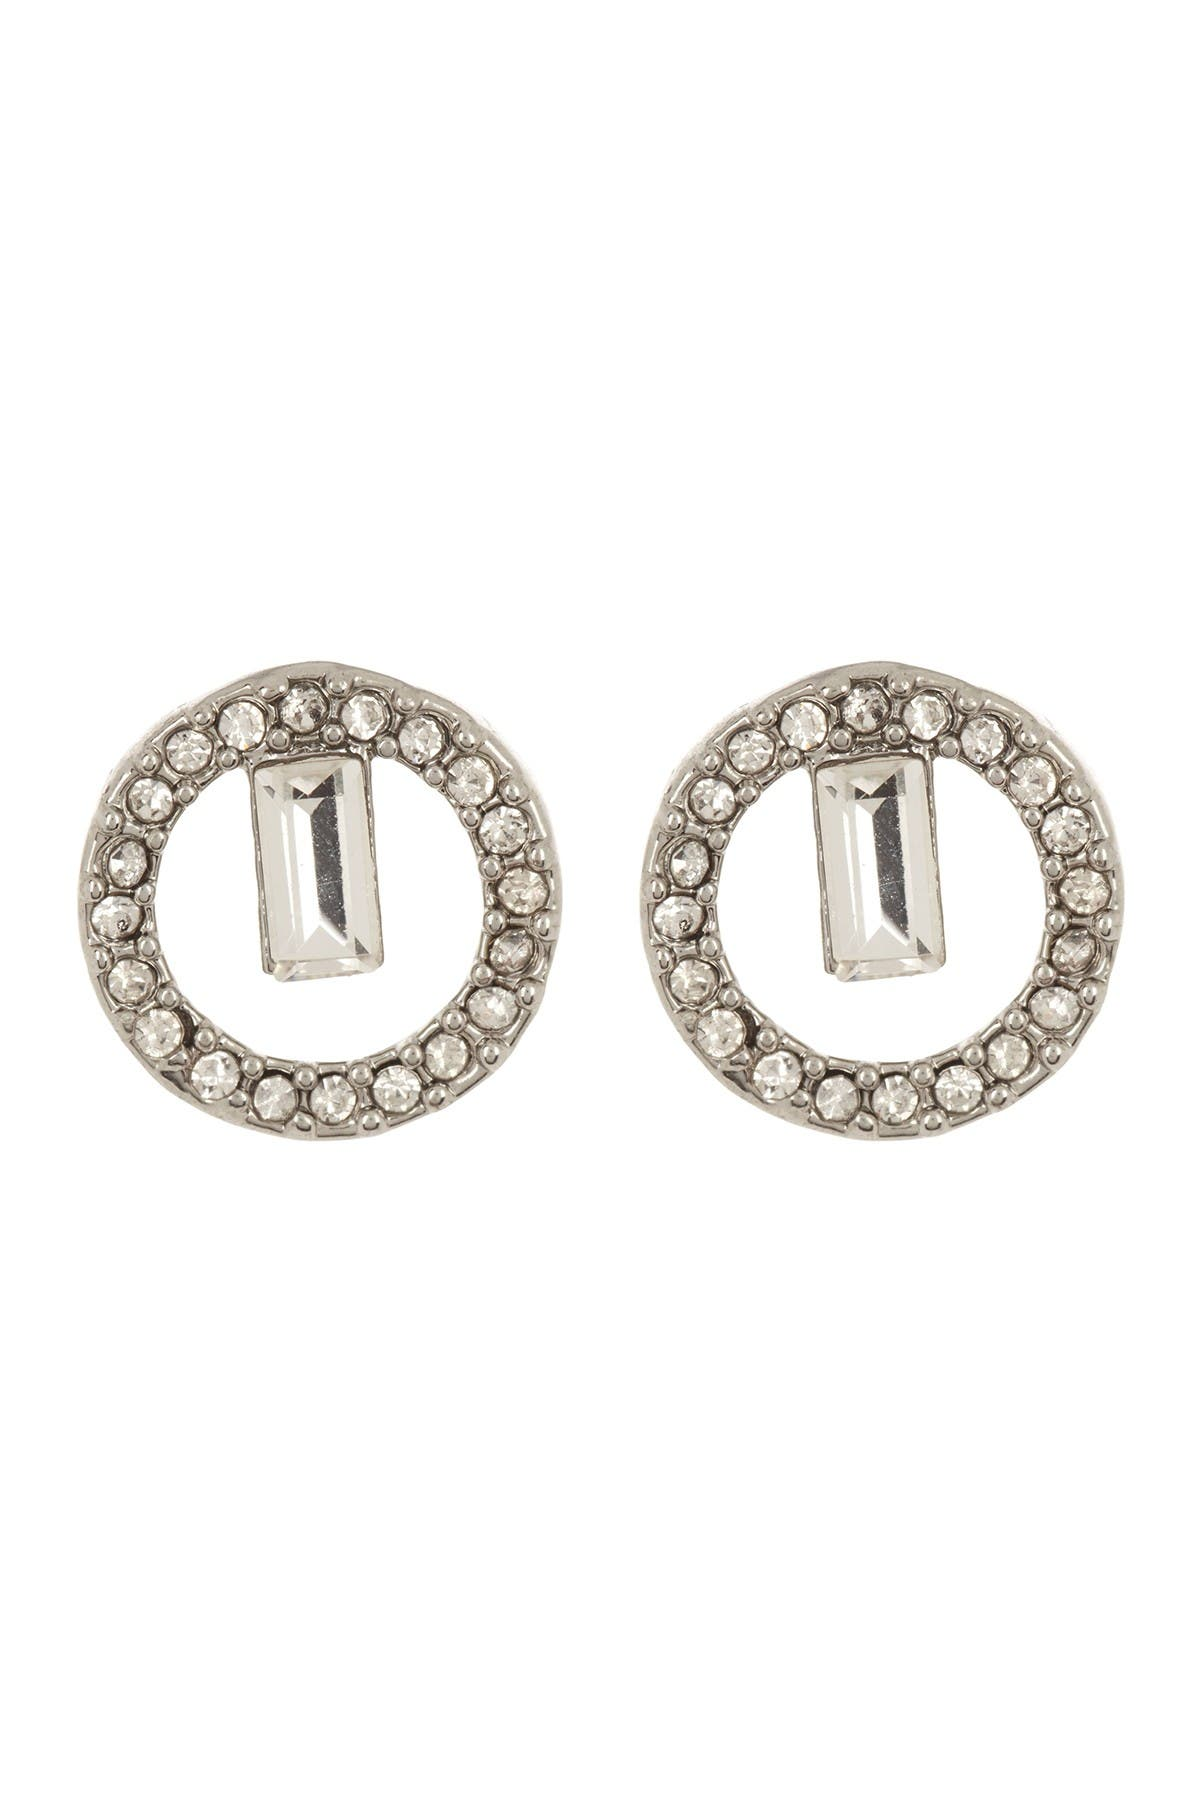 Image of Vince Camuto Stud Earrings